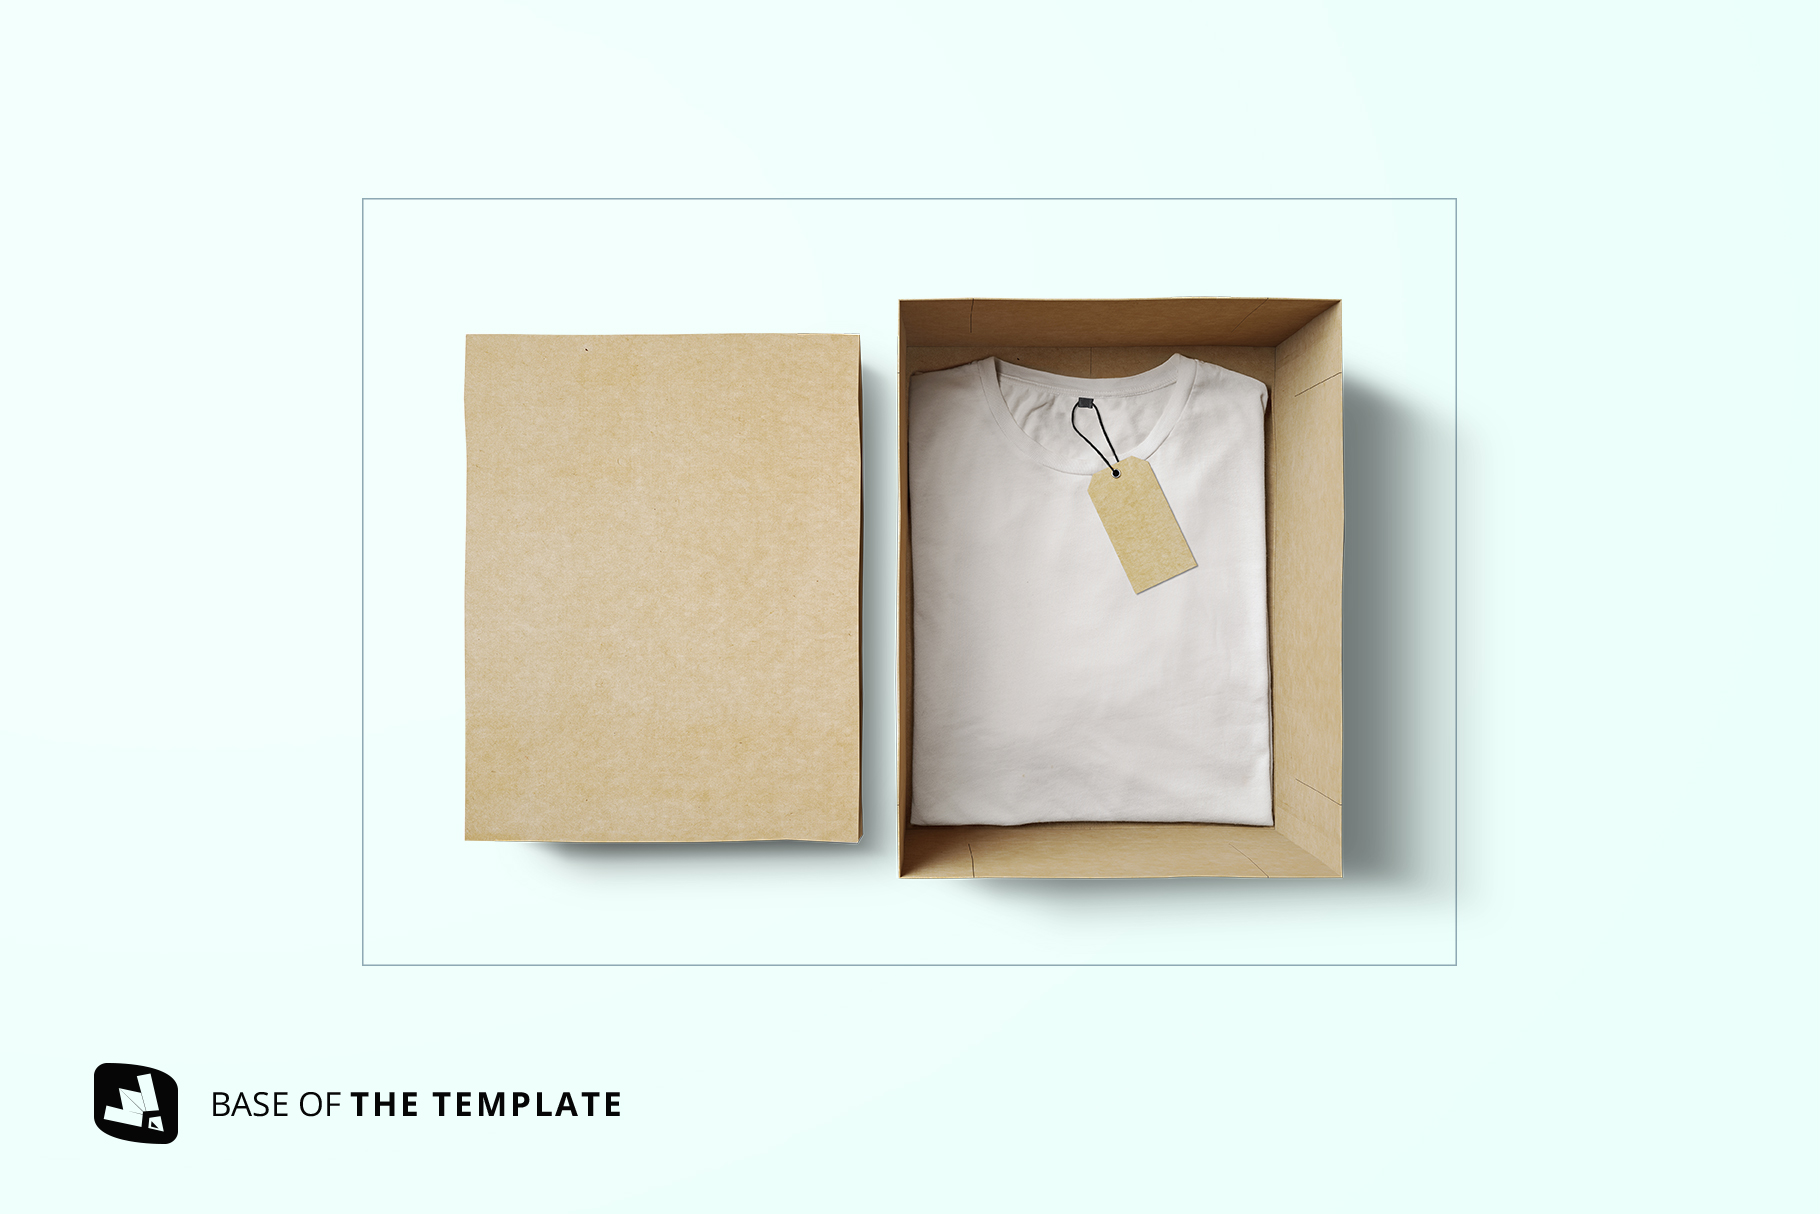 base image of the top view tshirt with packaging mockup